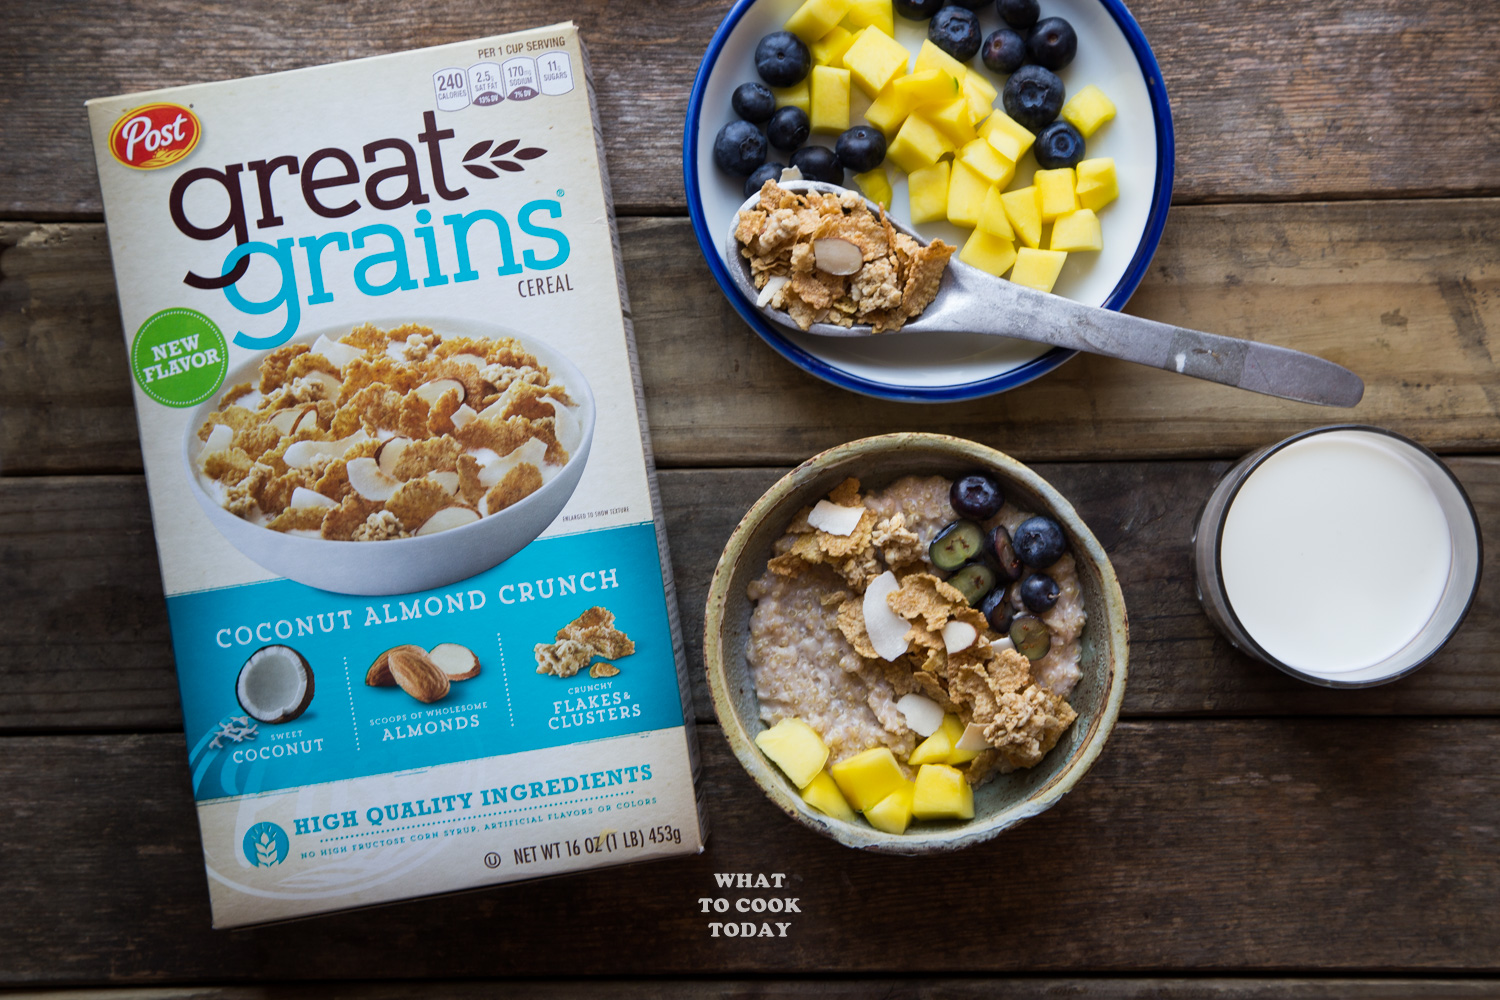 Quinoa Oats Porridge with Coconut Almond Crunch #ad #CelebrateGoodness #GreatGrainsGreatYear #quinoa